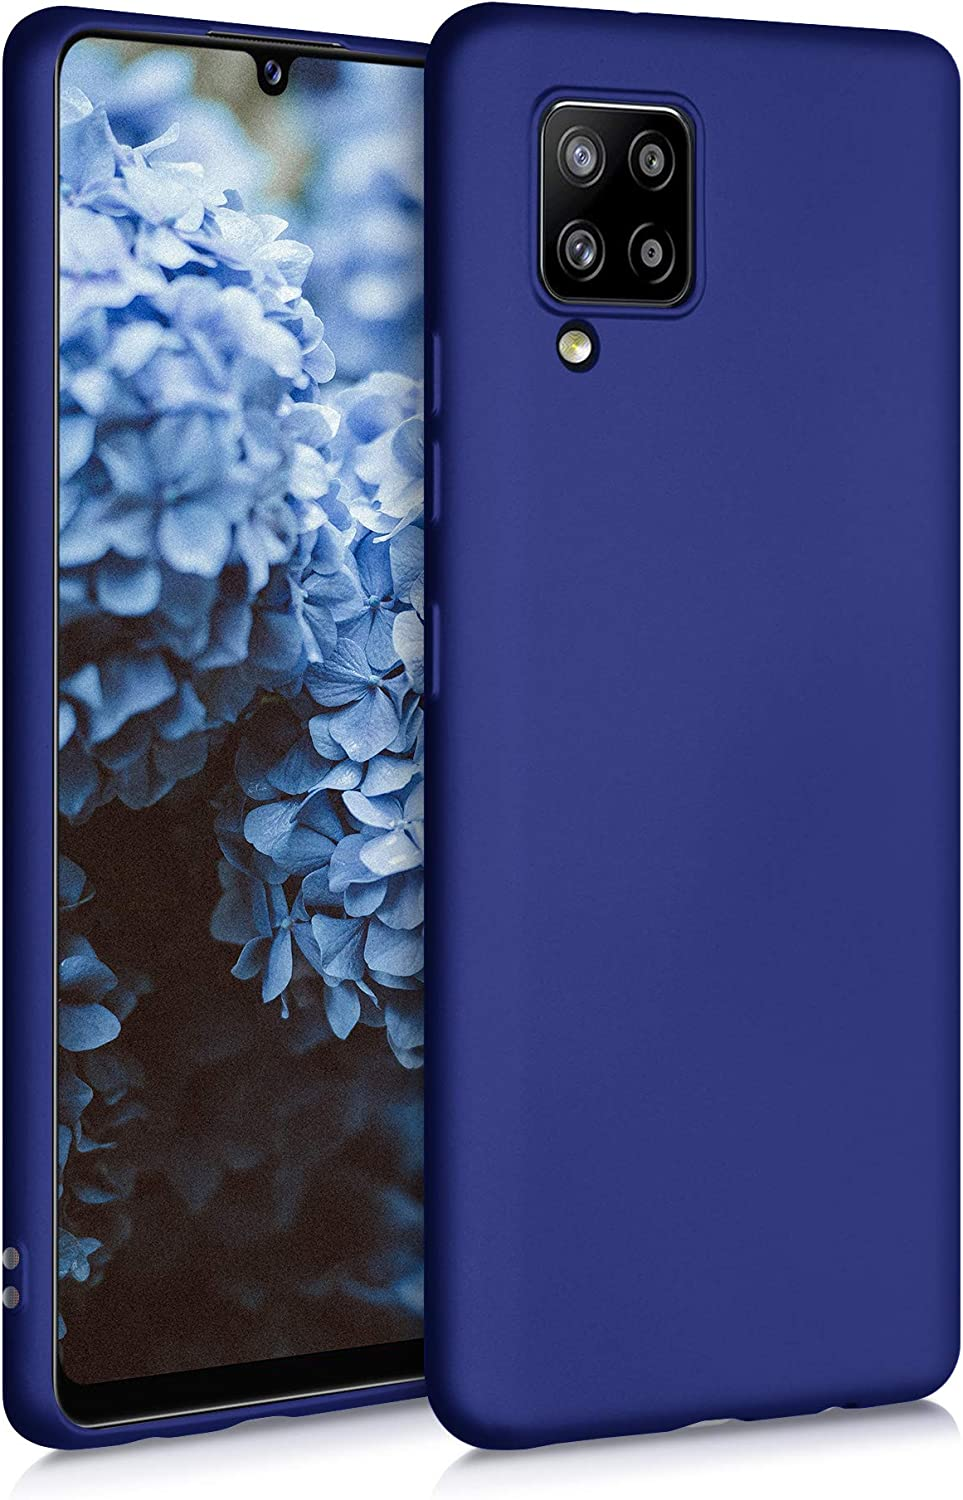 kwmobile TPU Case Compatible with Samsung Galaxy A42 5G - Case Soft Slim Smooth Flexible Protective Phone Cover - Metallic Blue